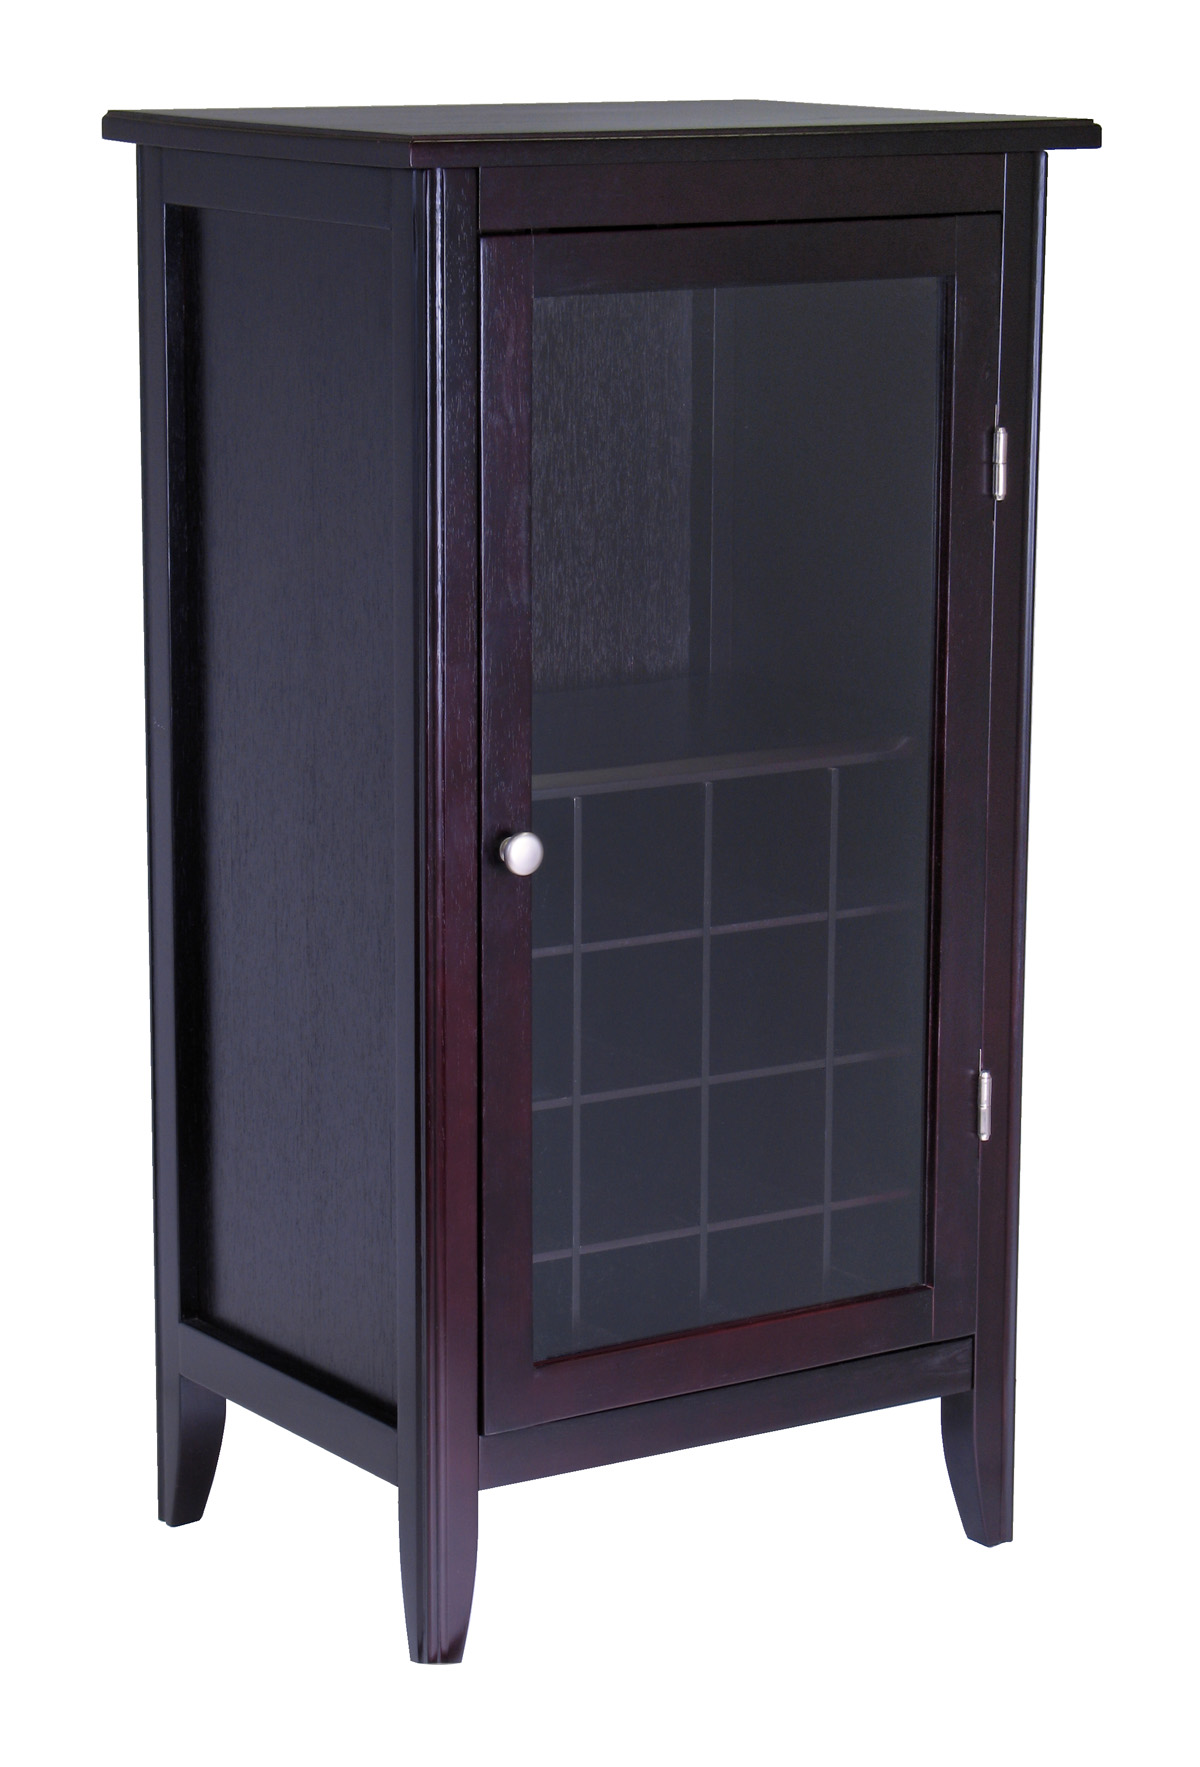 Winsome ryan wine cabinet 16 bottle one door glass rack Glass cabinet doors